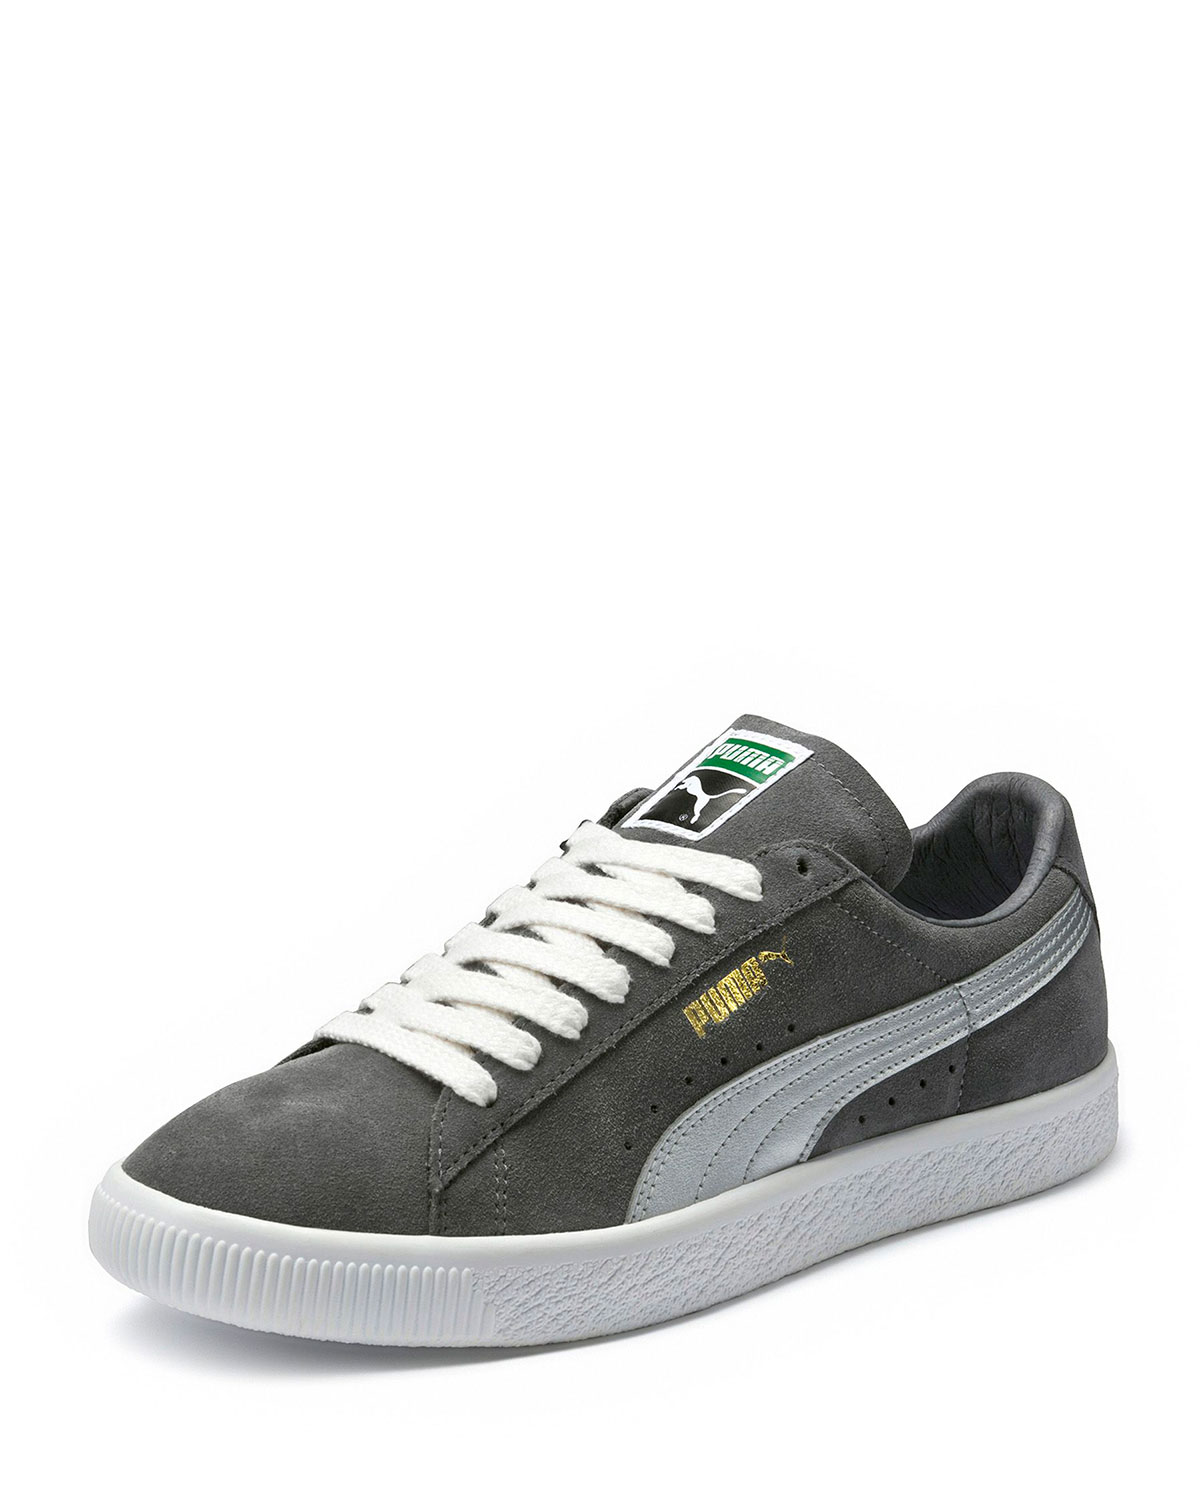 Puma Men s Clyde Suede Platform Low-Top Sneakers  8bc8f371d